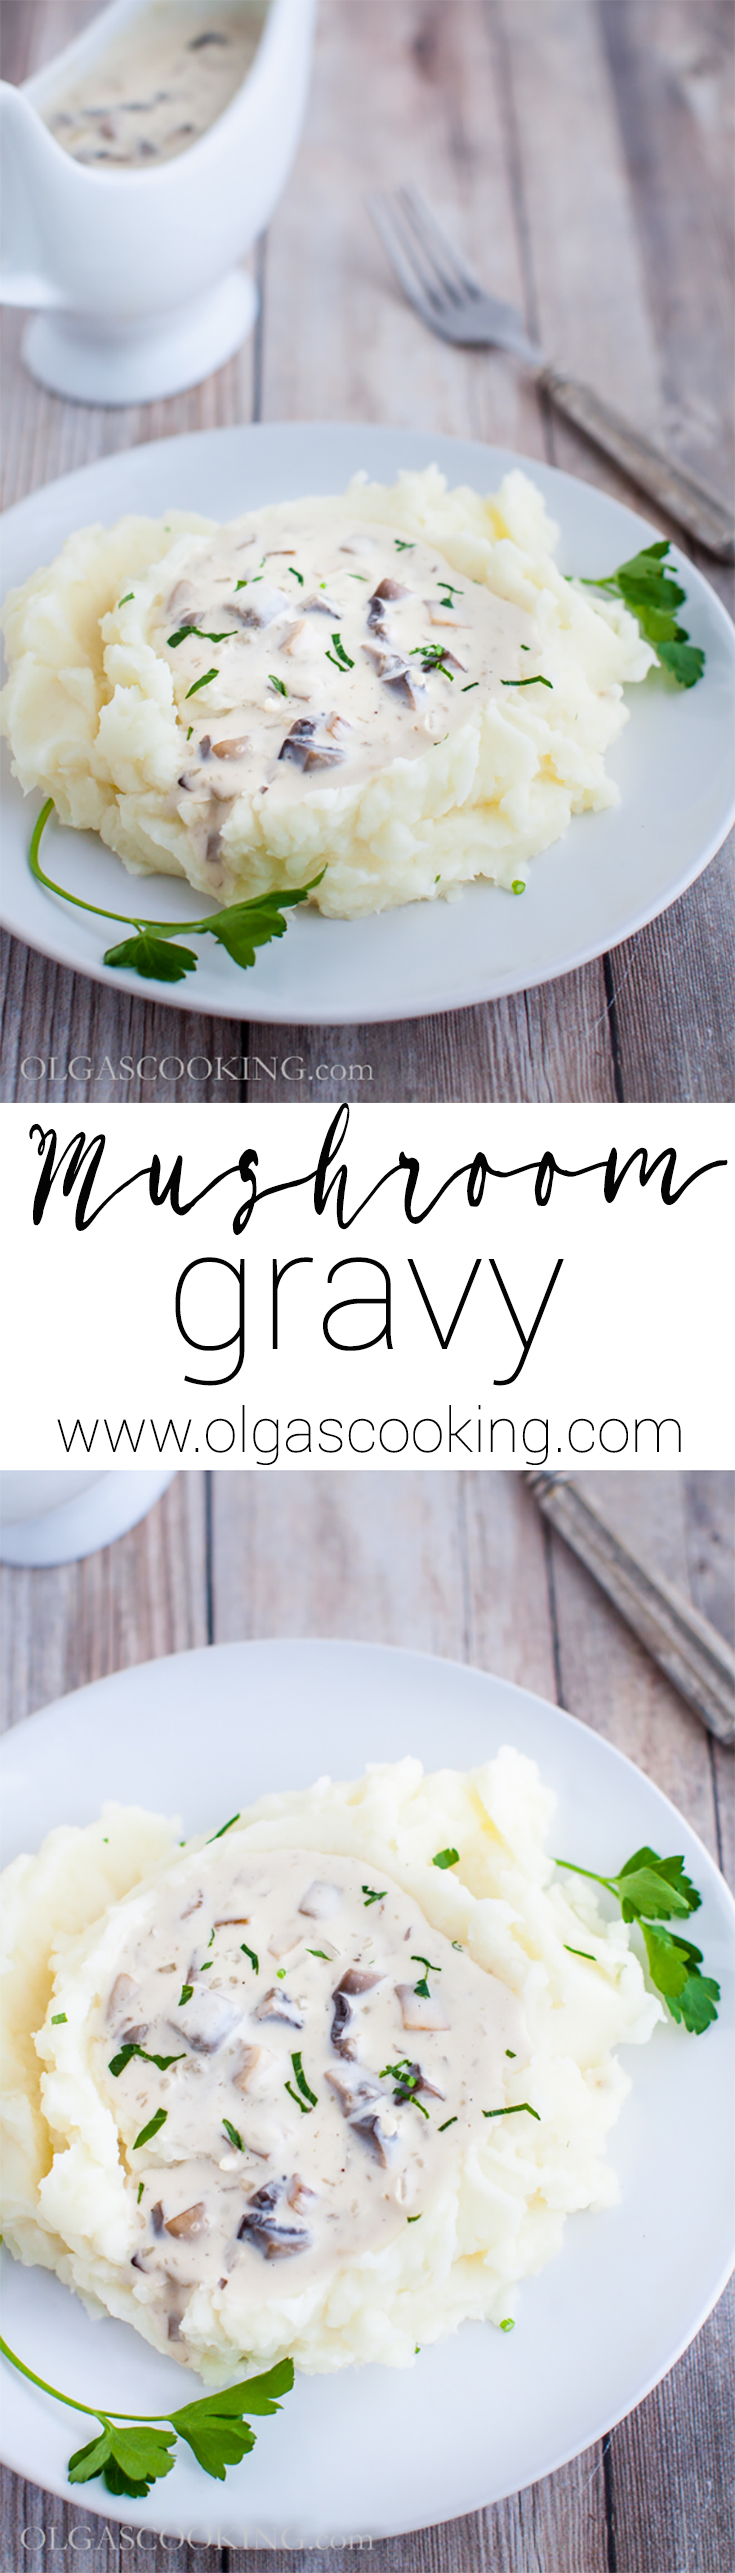 Easy mushroom gravy from scratch